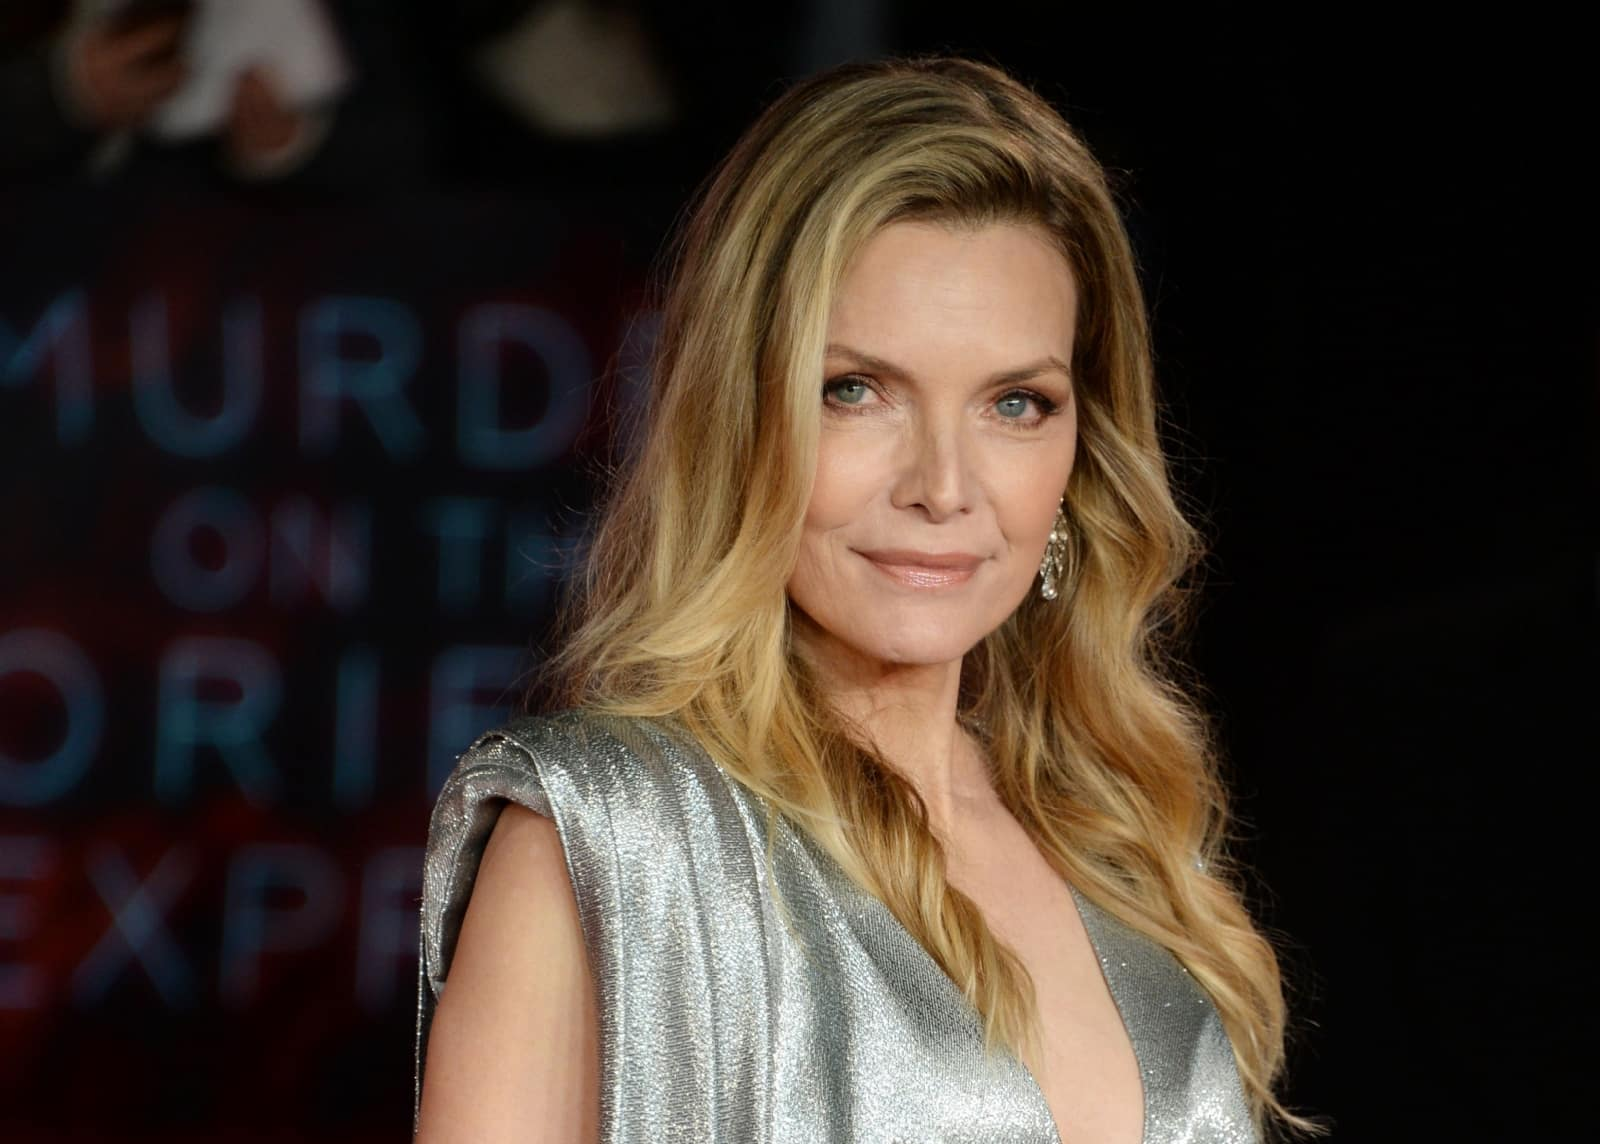 Maleficent 2 ficha a Michelle Pfeiffer, Ed Skrein y Harris Dickinson como parte del elenco